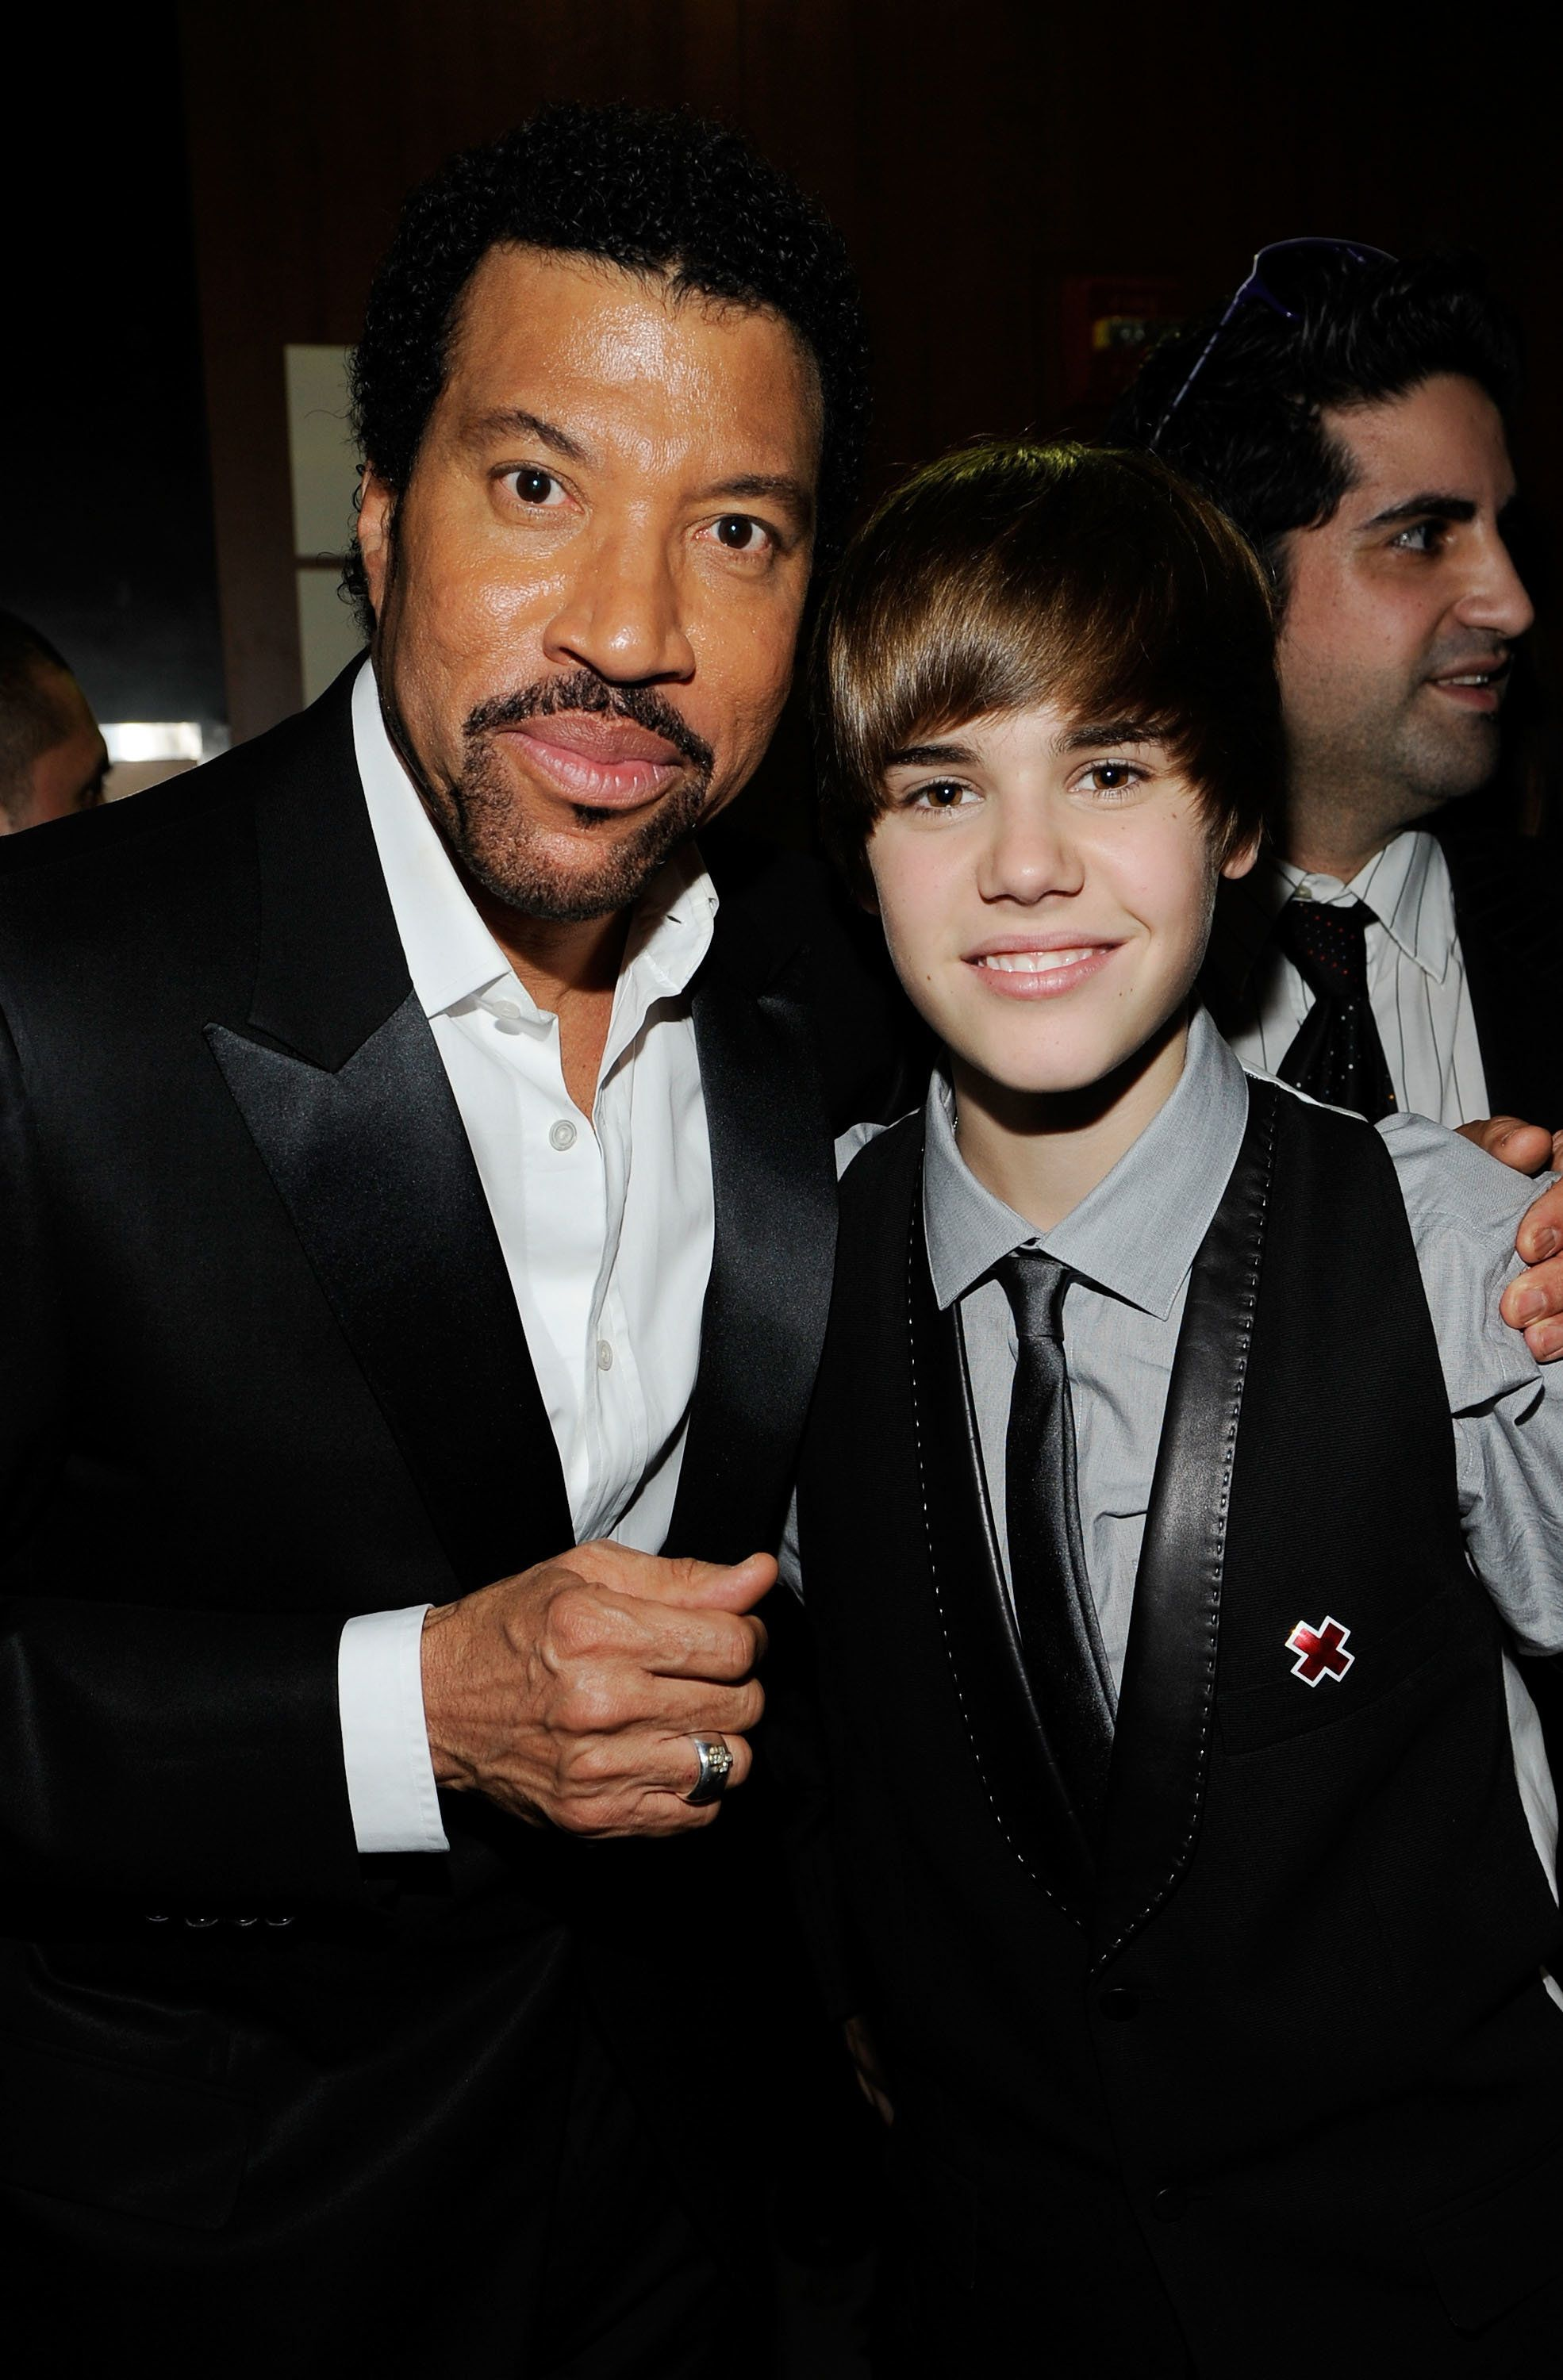 LOS ANGELES, CA - JANUARY 31:  Singers Lionel Richie and Justin Bieber backstage during the 52nd Annual GRAMMY Awards held at Staples Center on January 31, 2010 in Los Angeles, California.  (Photo by Larry Busacca/Getty Images)